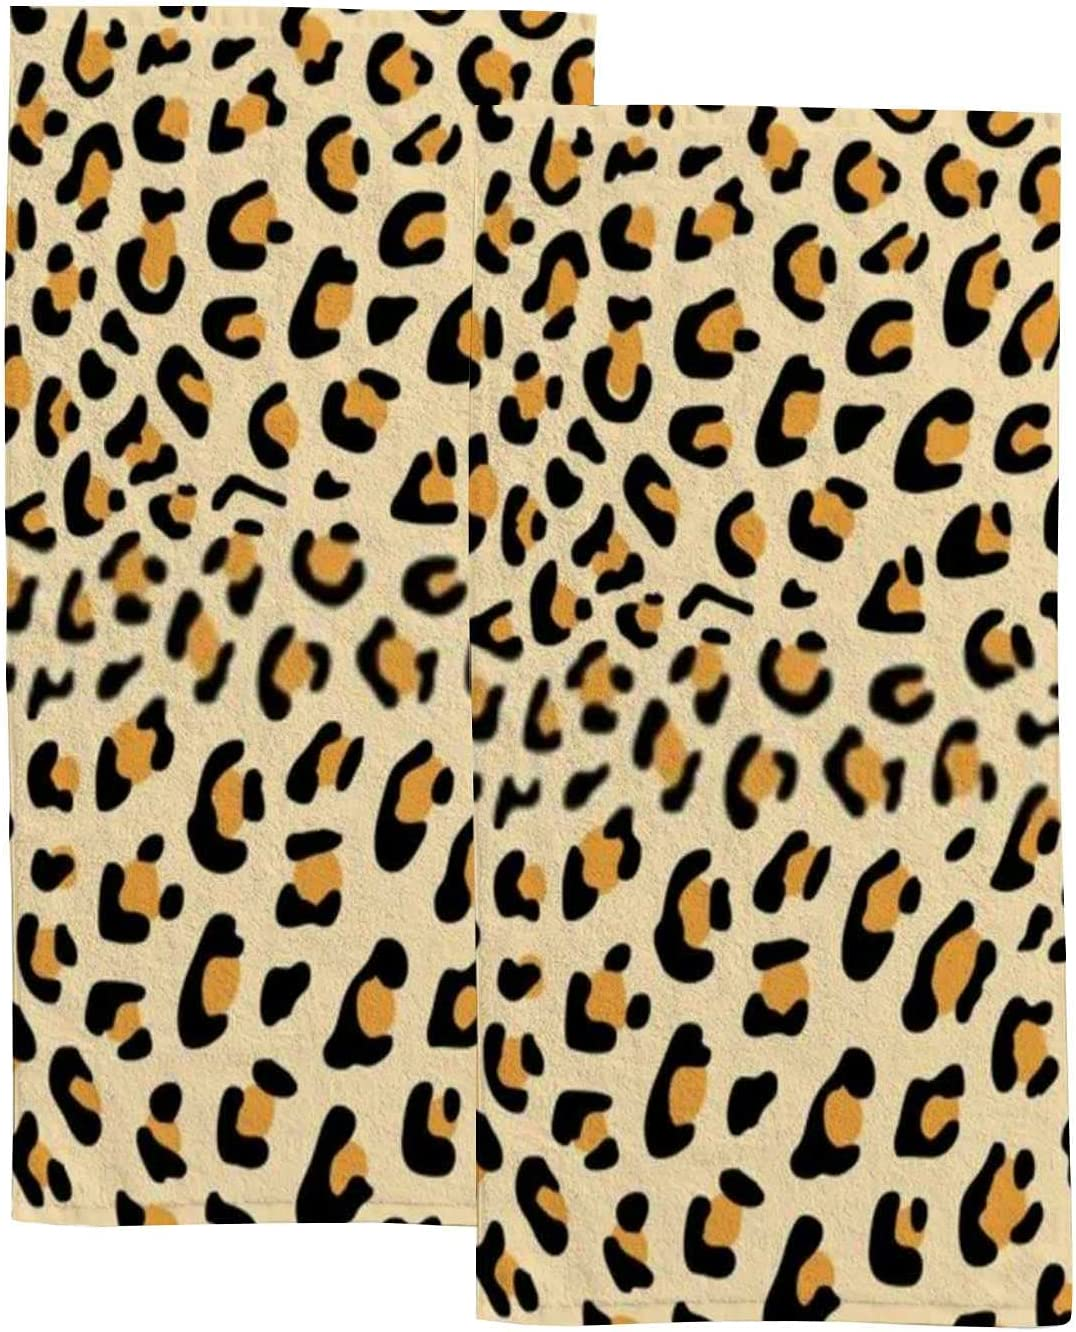 2-Piece Polyester Towel security Set Absorbent Leopard Bath Oakland Mall Hand T